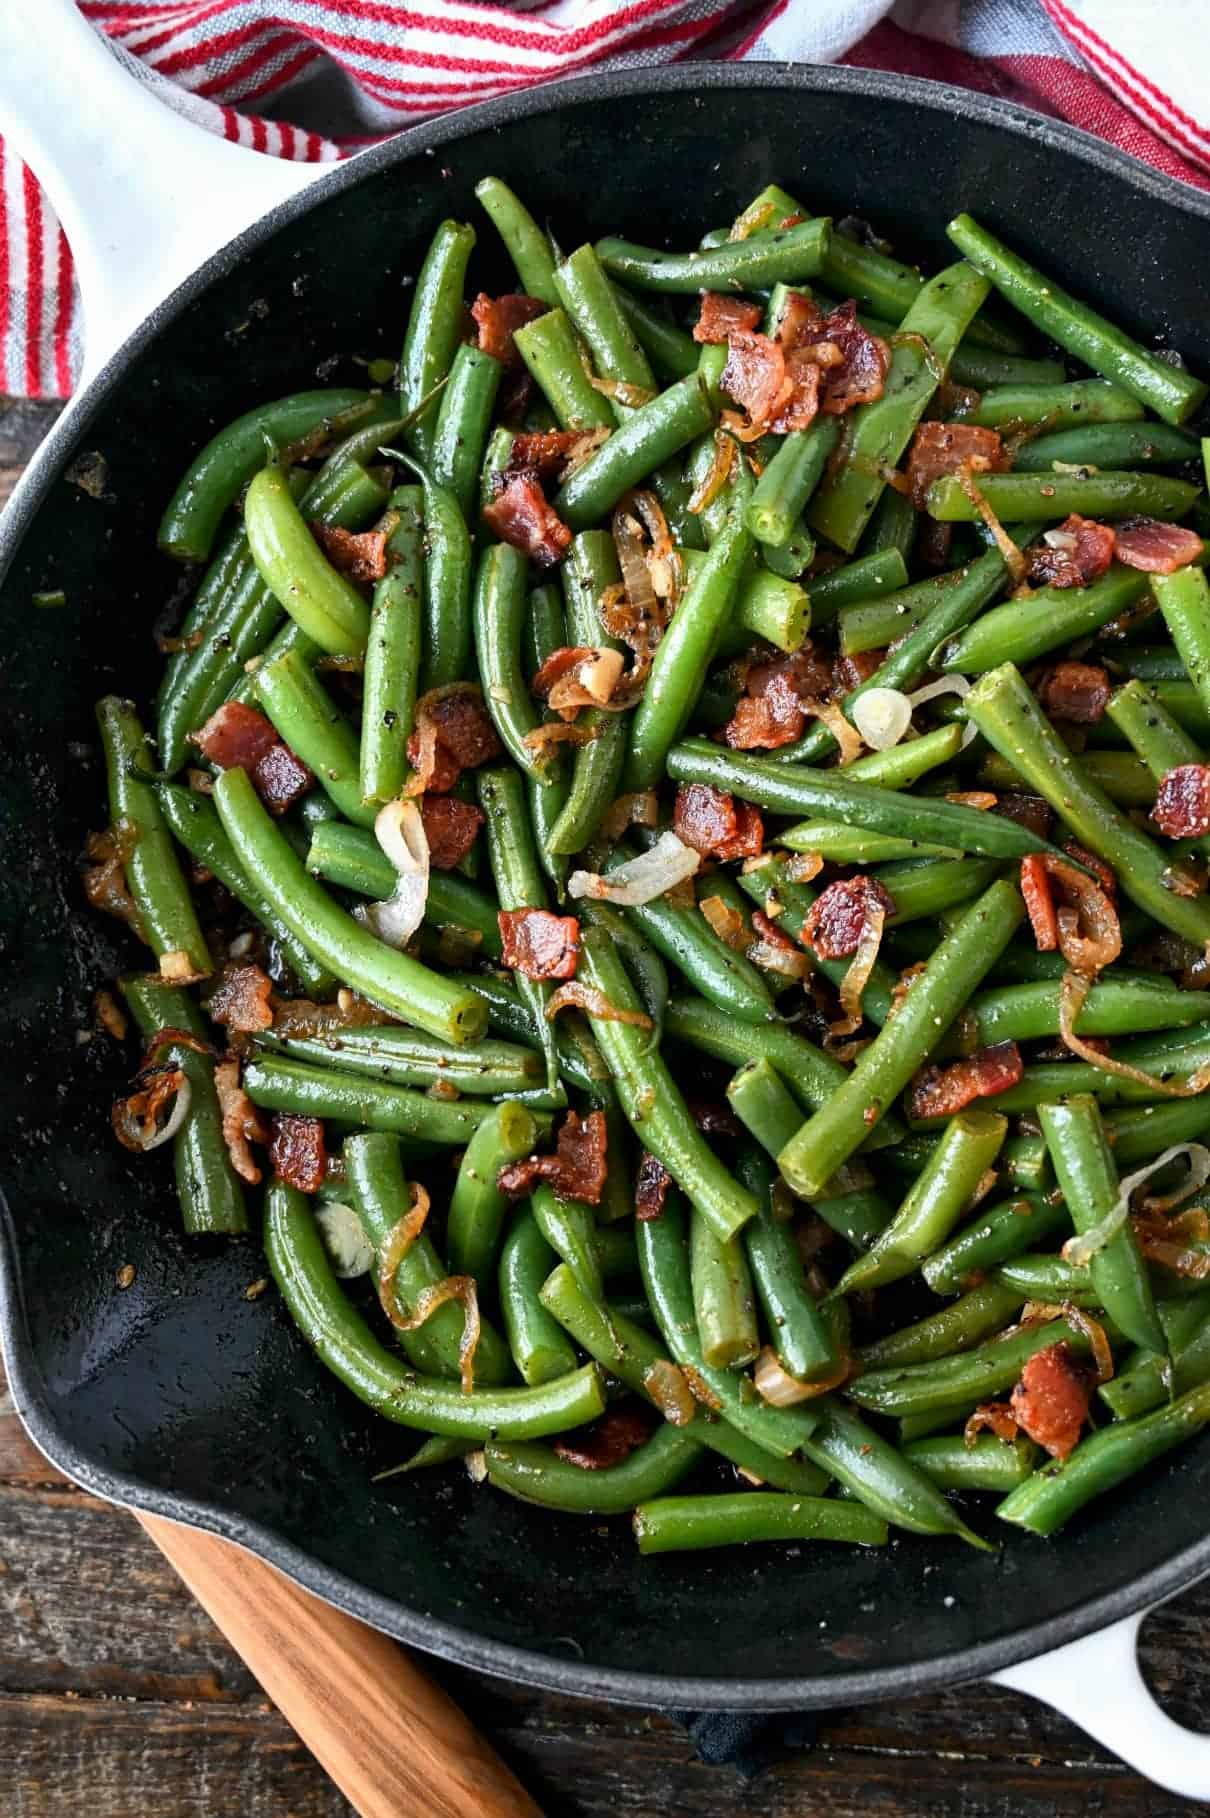 Close up photo of green beans and bacon in a skillet.